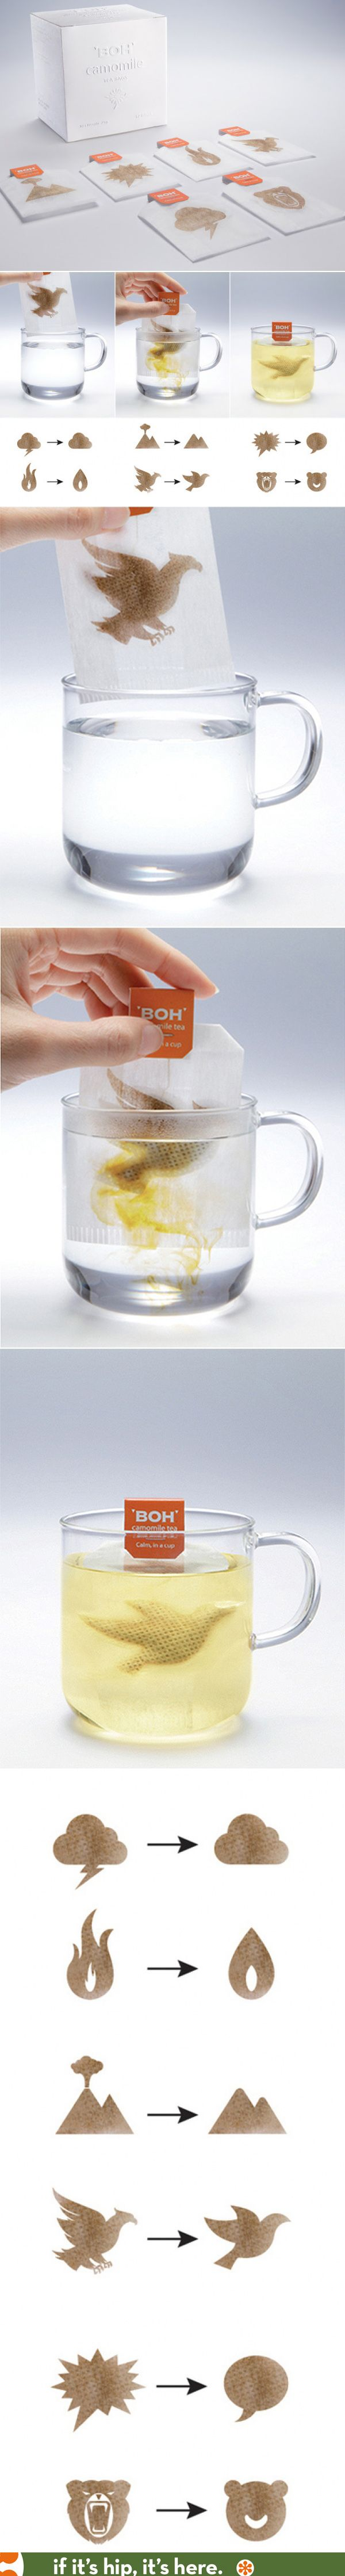 A clever way to market 'calm' for BOH Camomile tea bags. PD